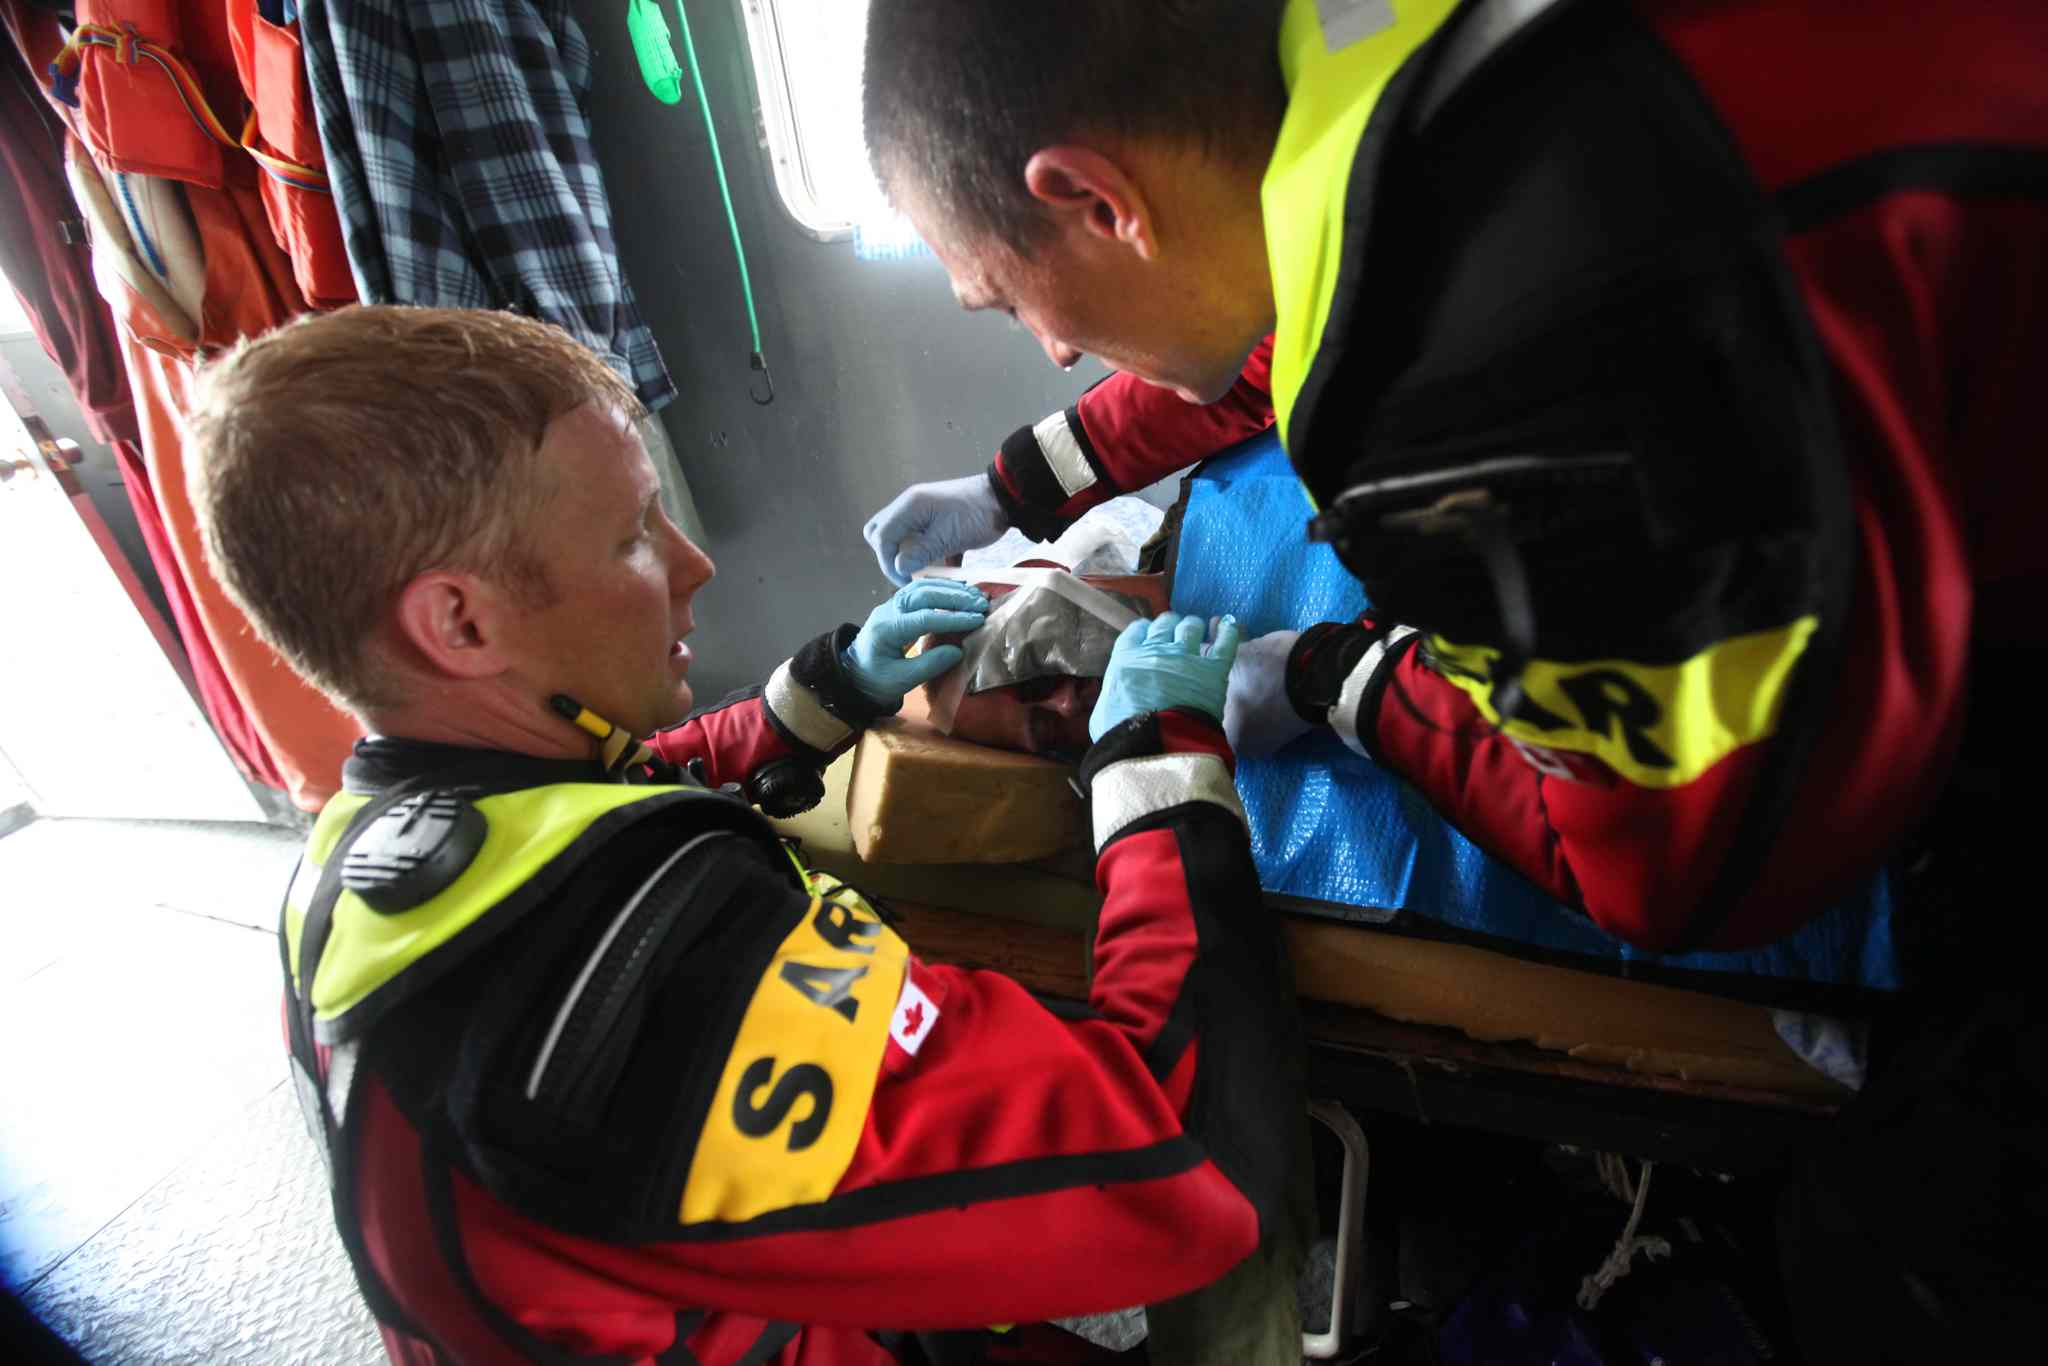 SAR techs work together to aid the victim.